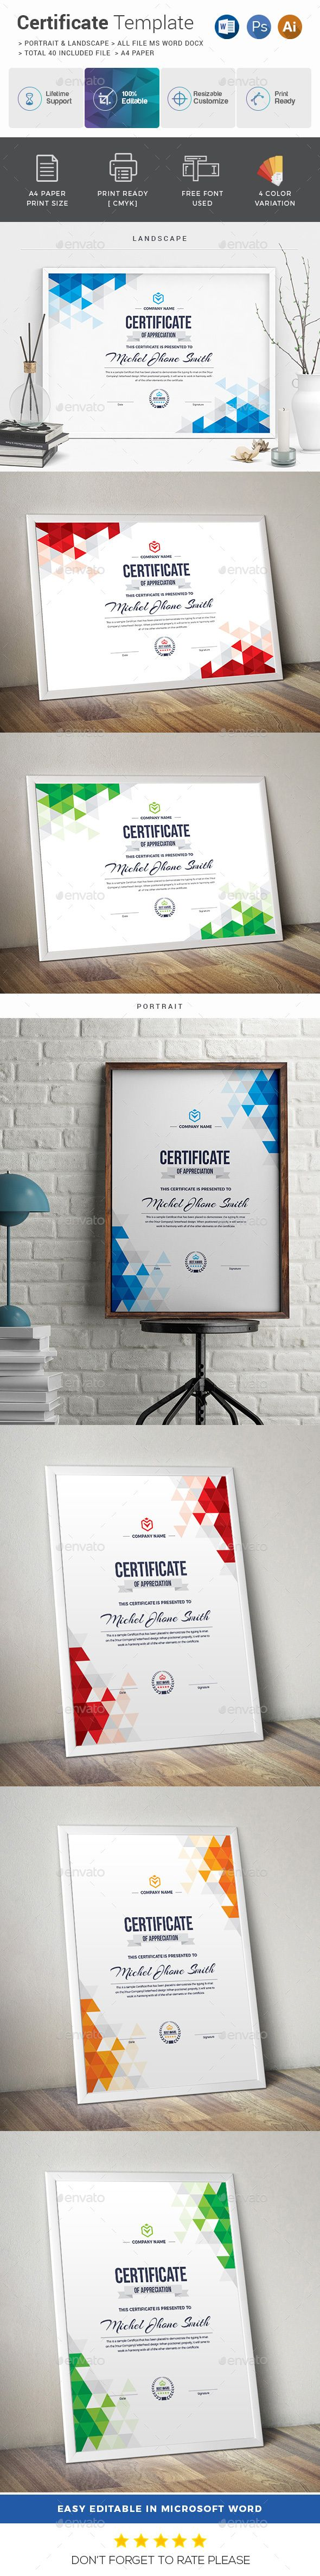 Certificate a4 paper paper size and adobe photoshop certificate features of certificate template color versions a4 paper size with bleeds quick and easy to yelopaper Choice Image